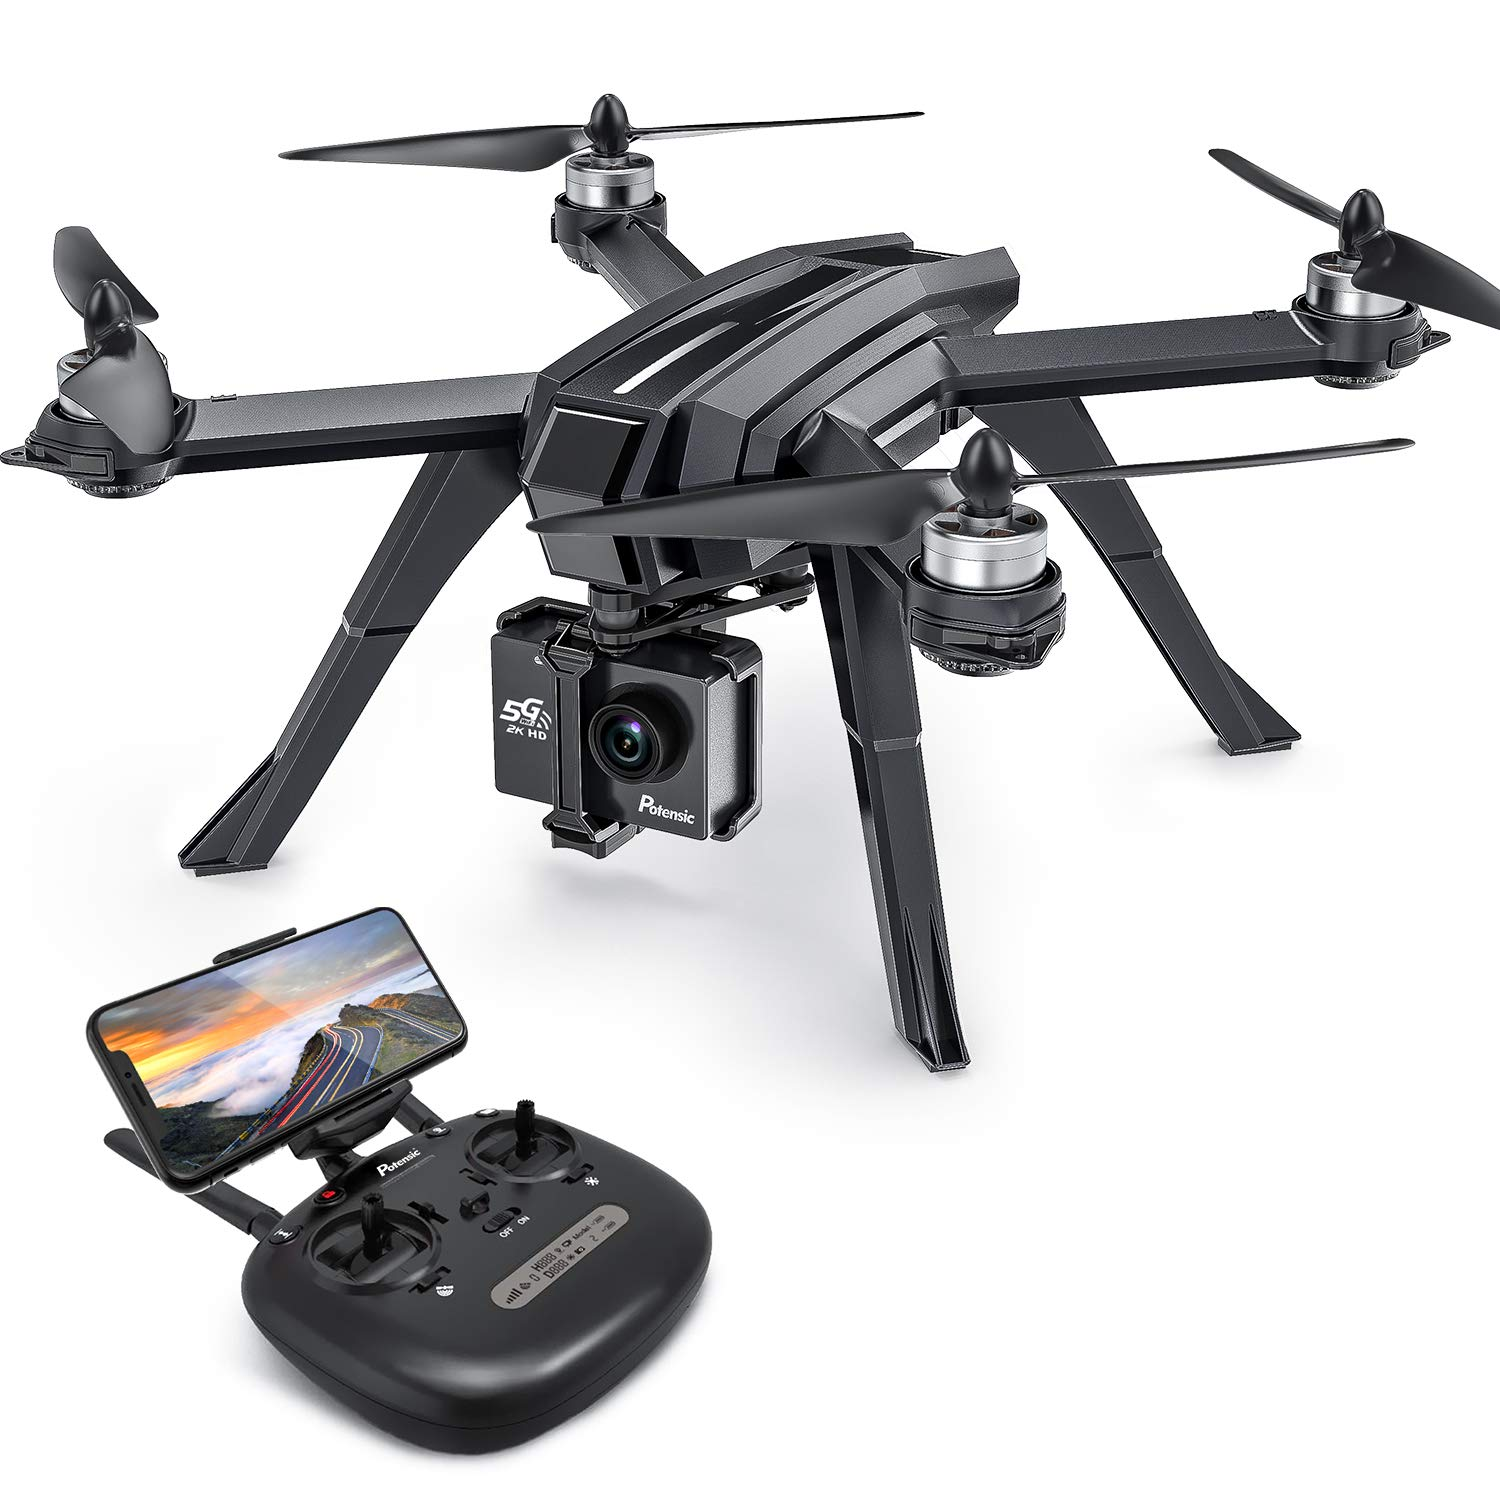 potensic-d85-fpv-gps-drone-with-2k-hd-camera-live-video-5g-wifi-rc-quadcopter-brushless-follow-me